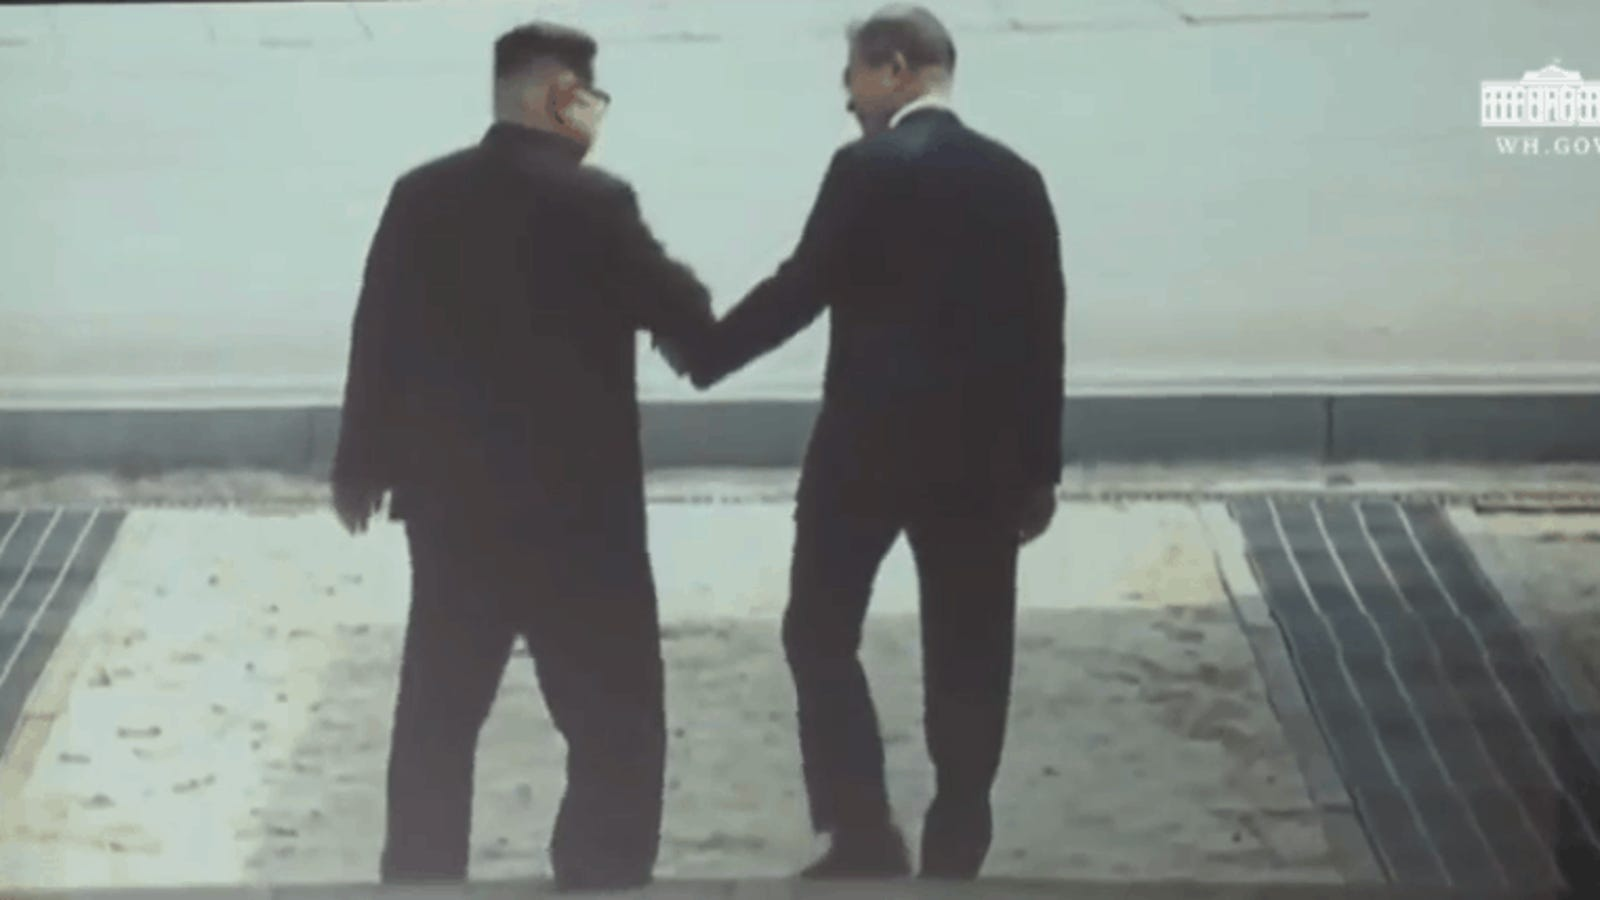 President Trump Made aFake Movie Trailer for Kim Jong Un with the Two Leaders as Heroes